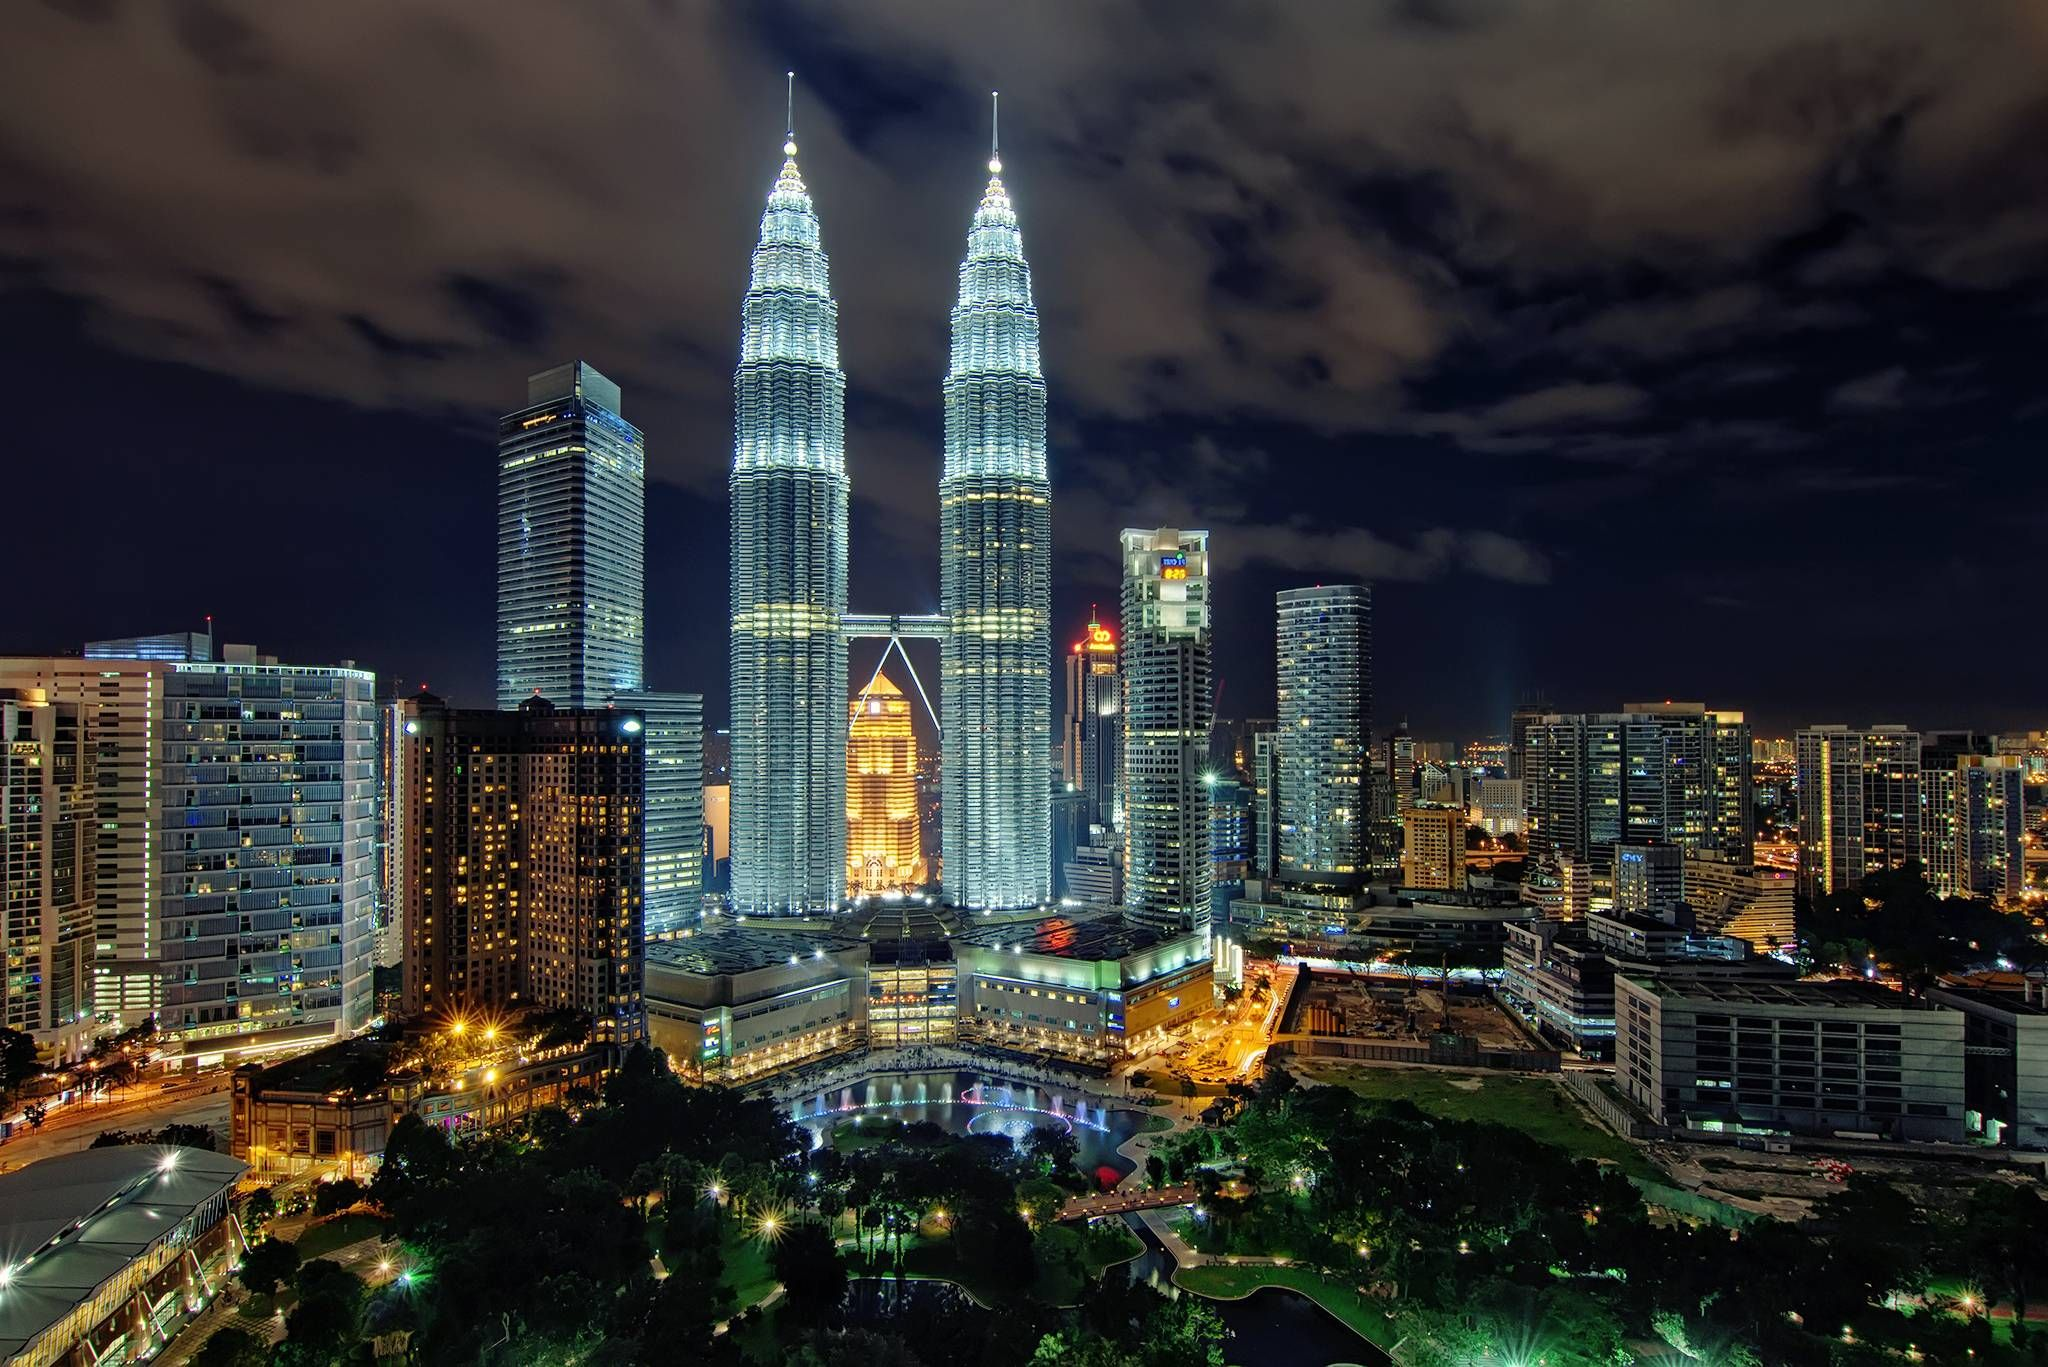 Photo of the petronas towers at night kuala lumpur malaysia kuala lumpur is home to the tallest twin buildings in the world the petronas twin towers which have become an iconic symbol of malaysias futuristic buycottarizona Gallery